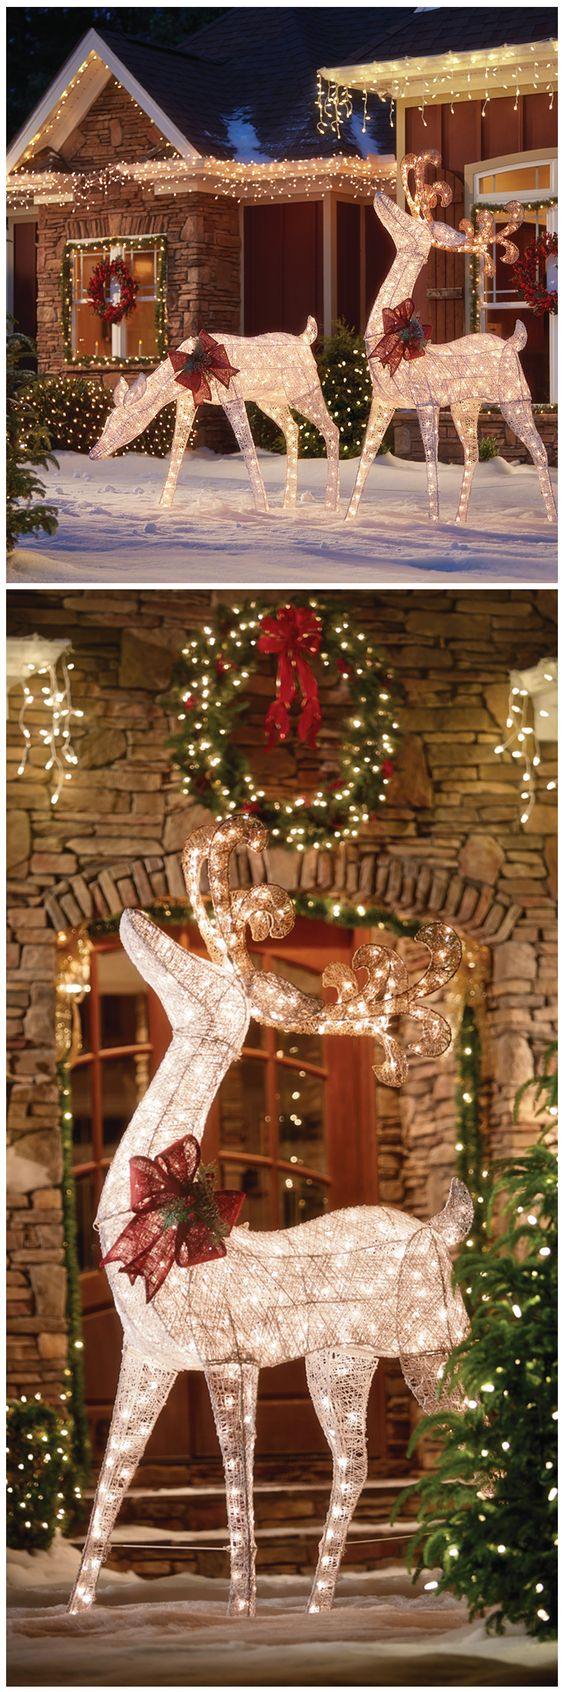 These luminous deer figures will add a classic, rustic